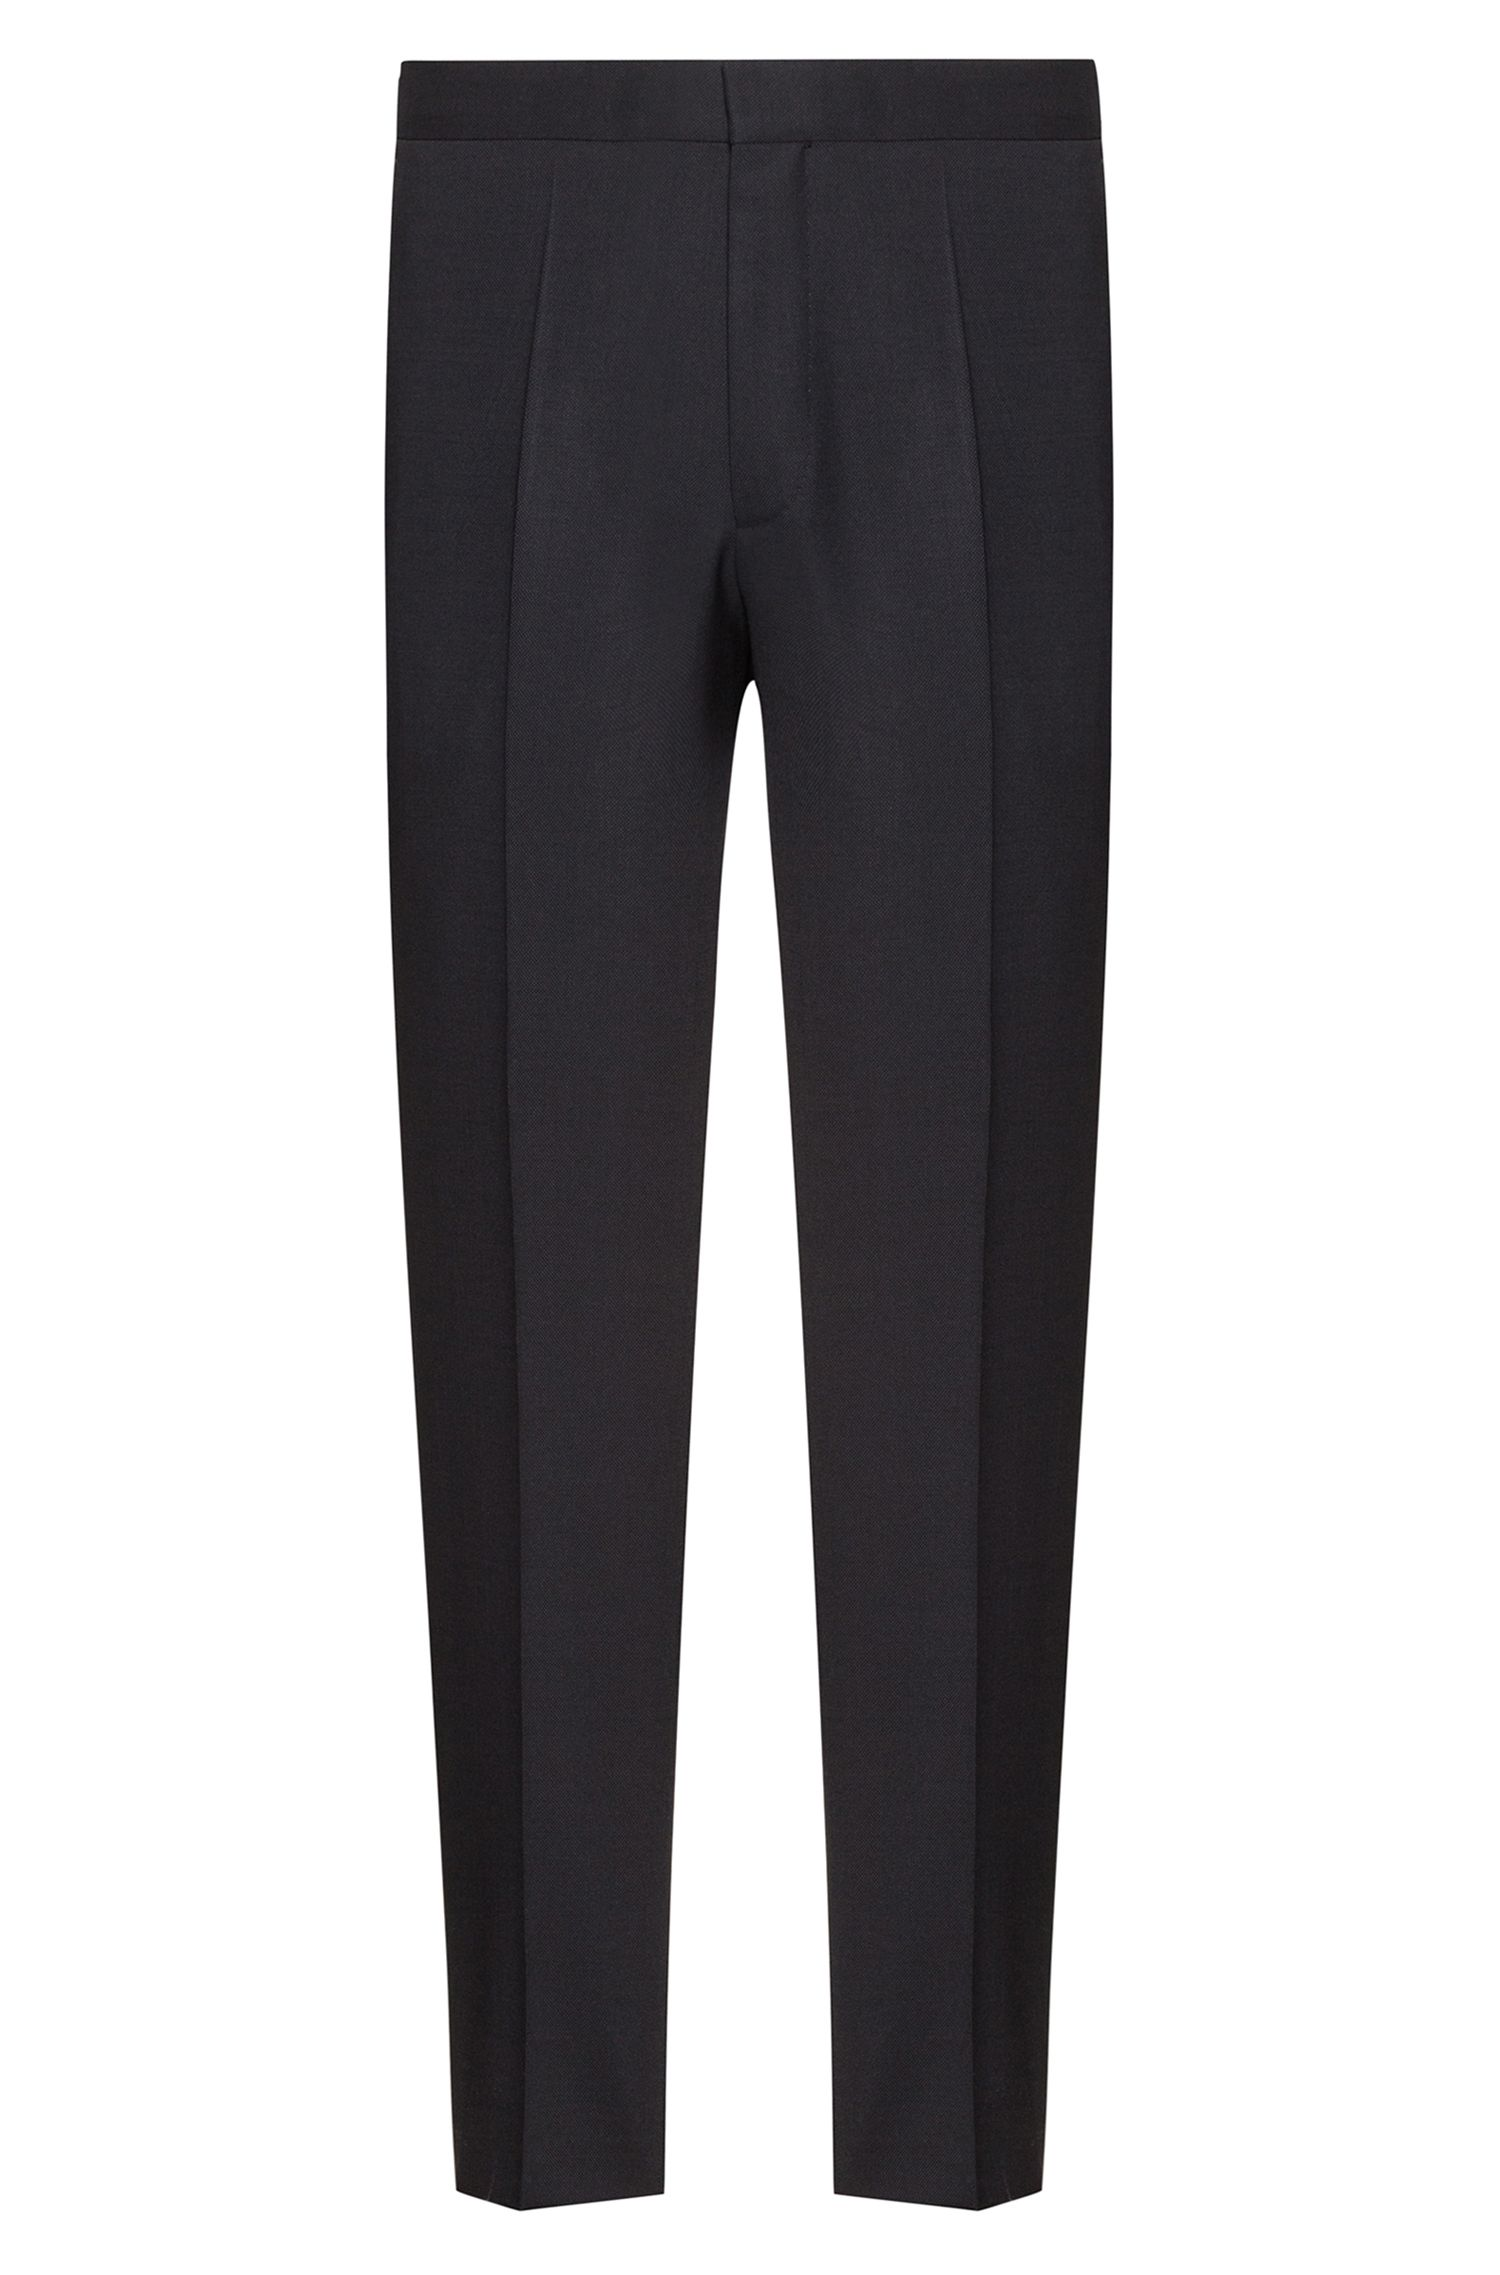 Extra-slim-fit virgin-wool trousers with cropped length, Black